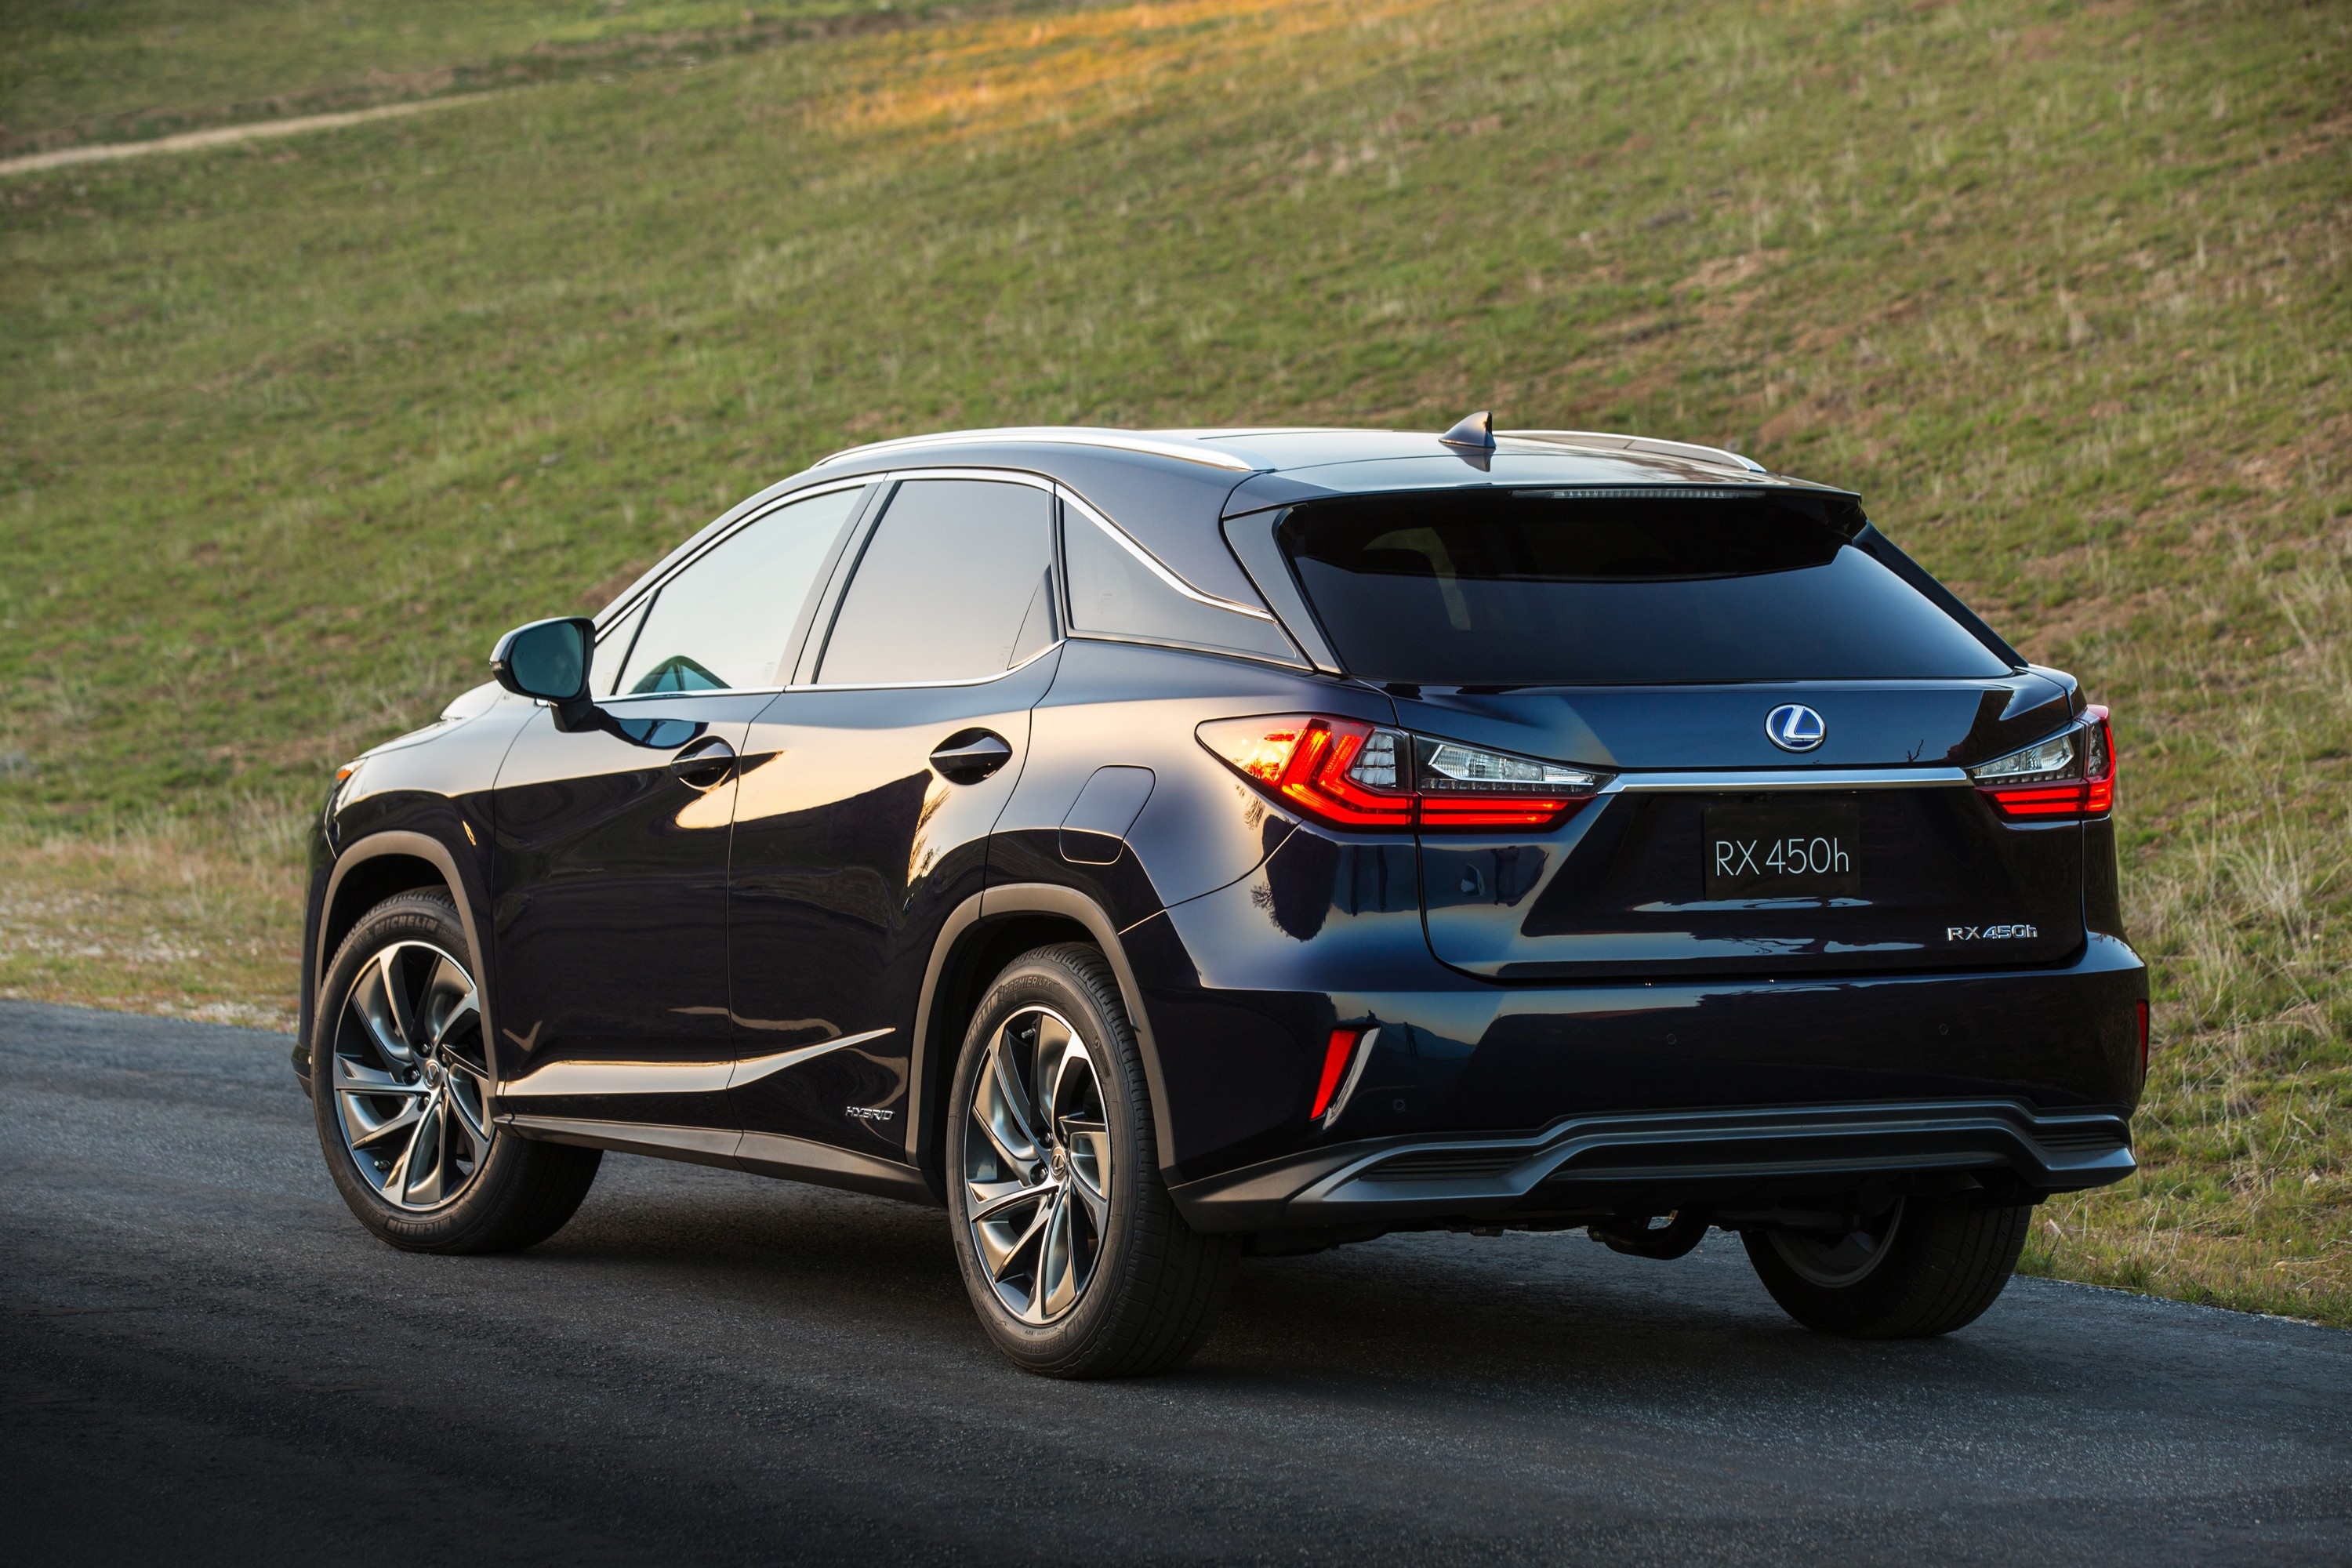 2016 Lexus RX 350 F Sport and RX 450h Show Up in NYC - autoevolution